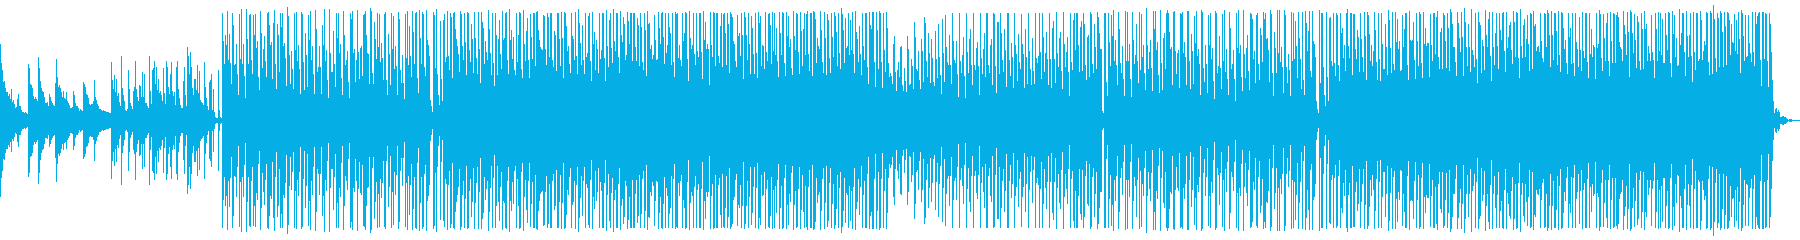 The end of summer. Tropical house_2's reproduced waveform